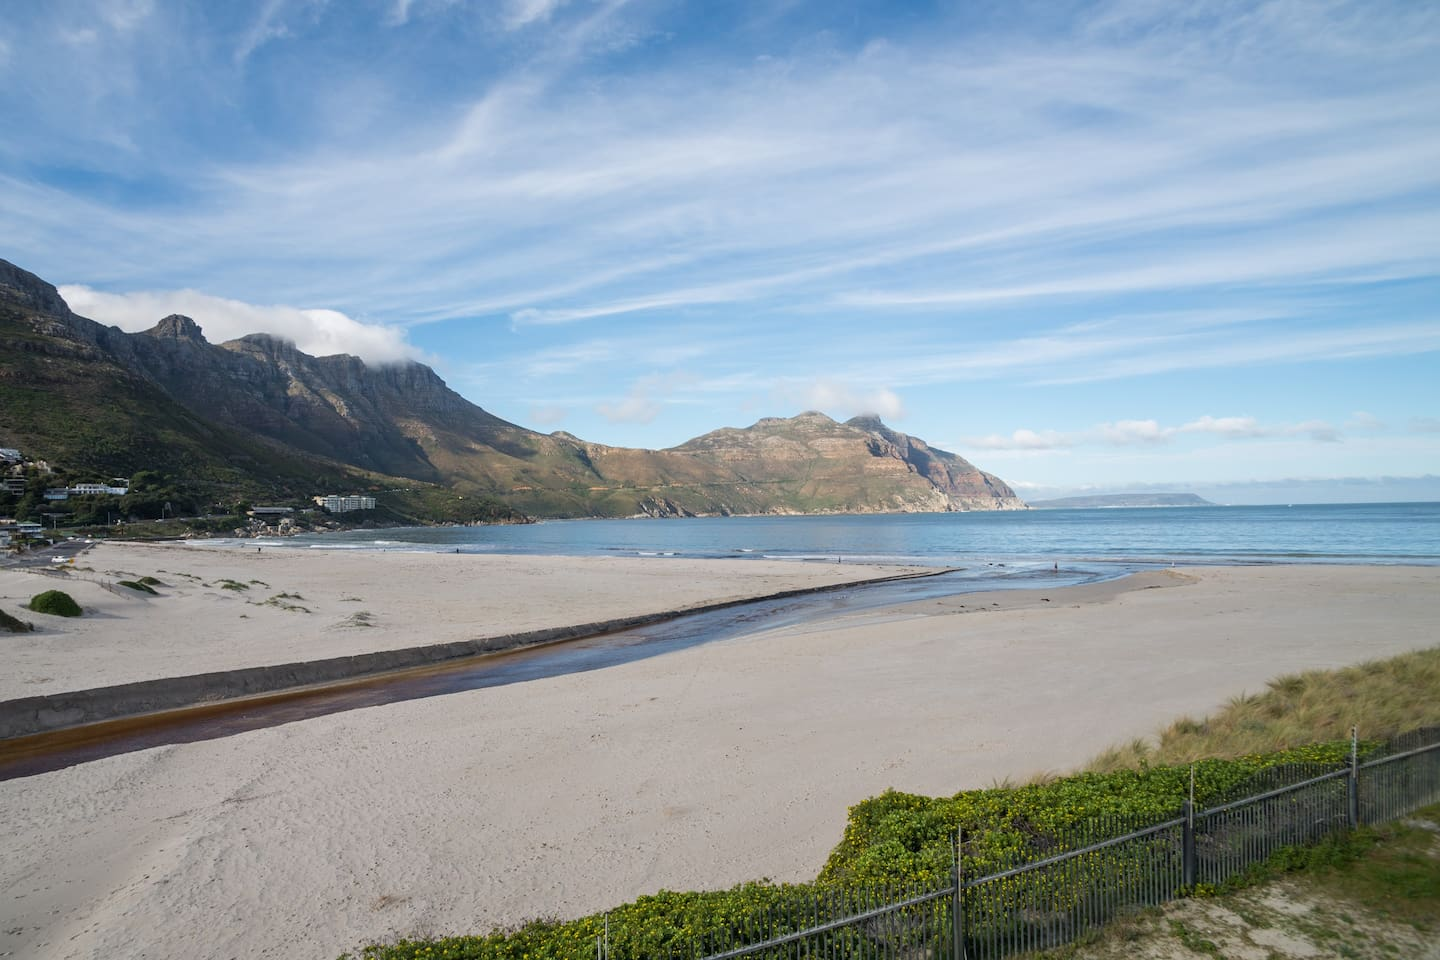 Hout Bay Beach & Chapman's Peak View From the house